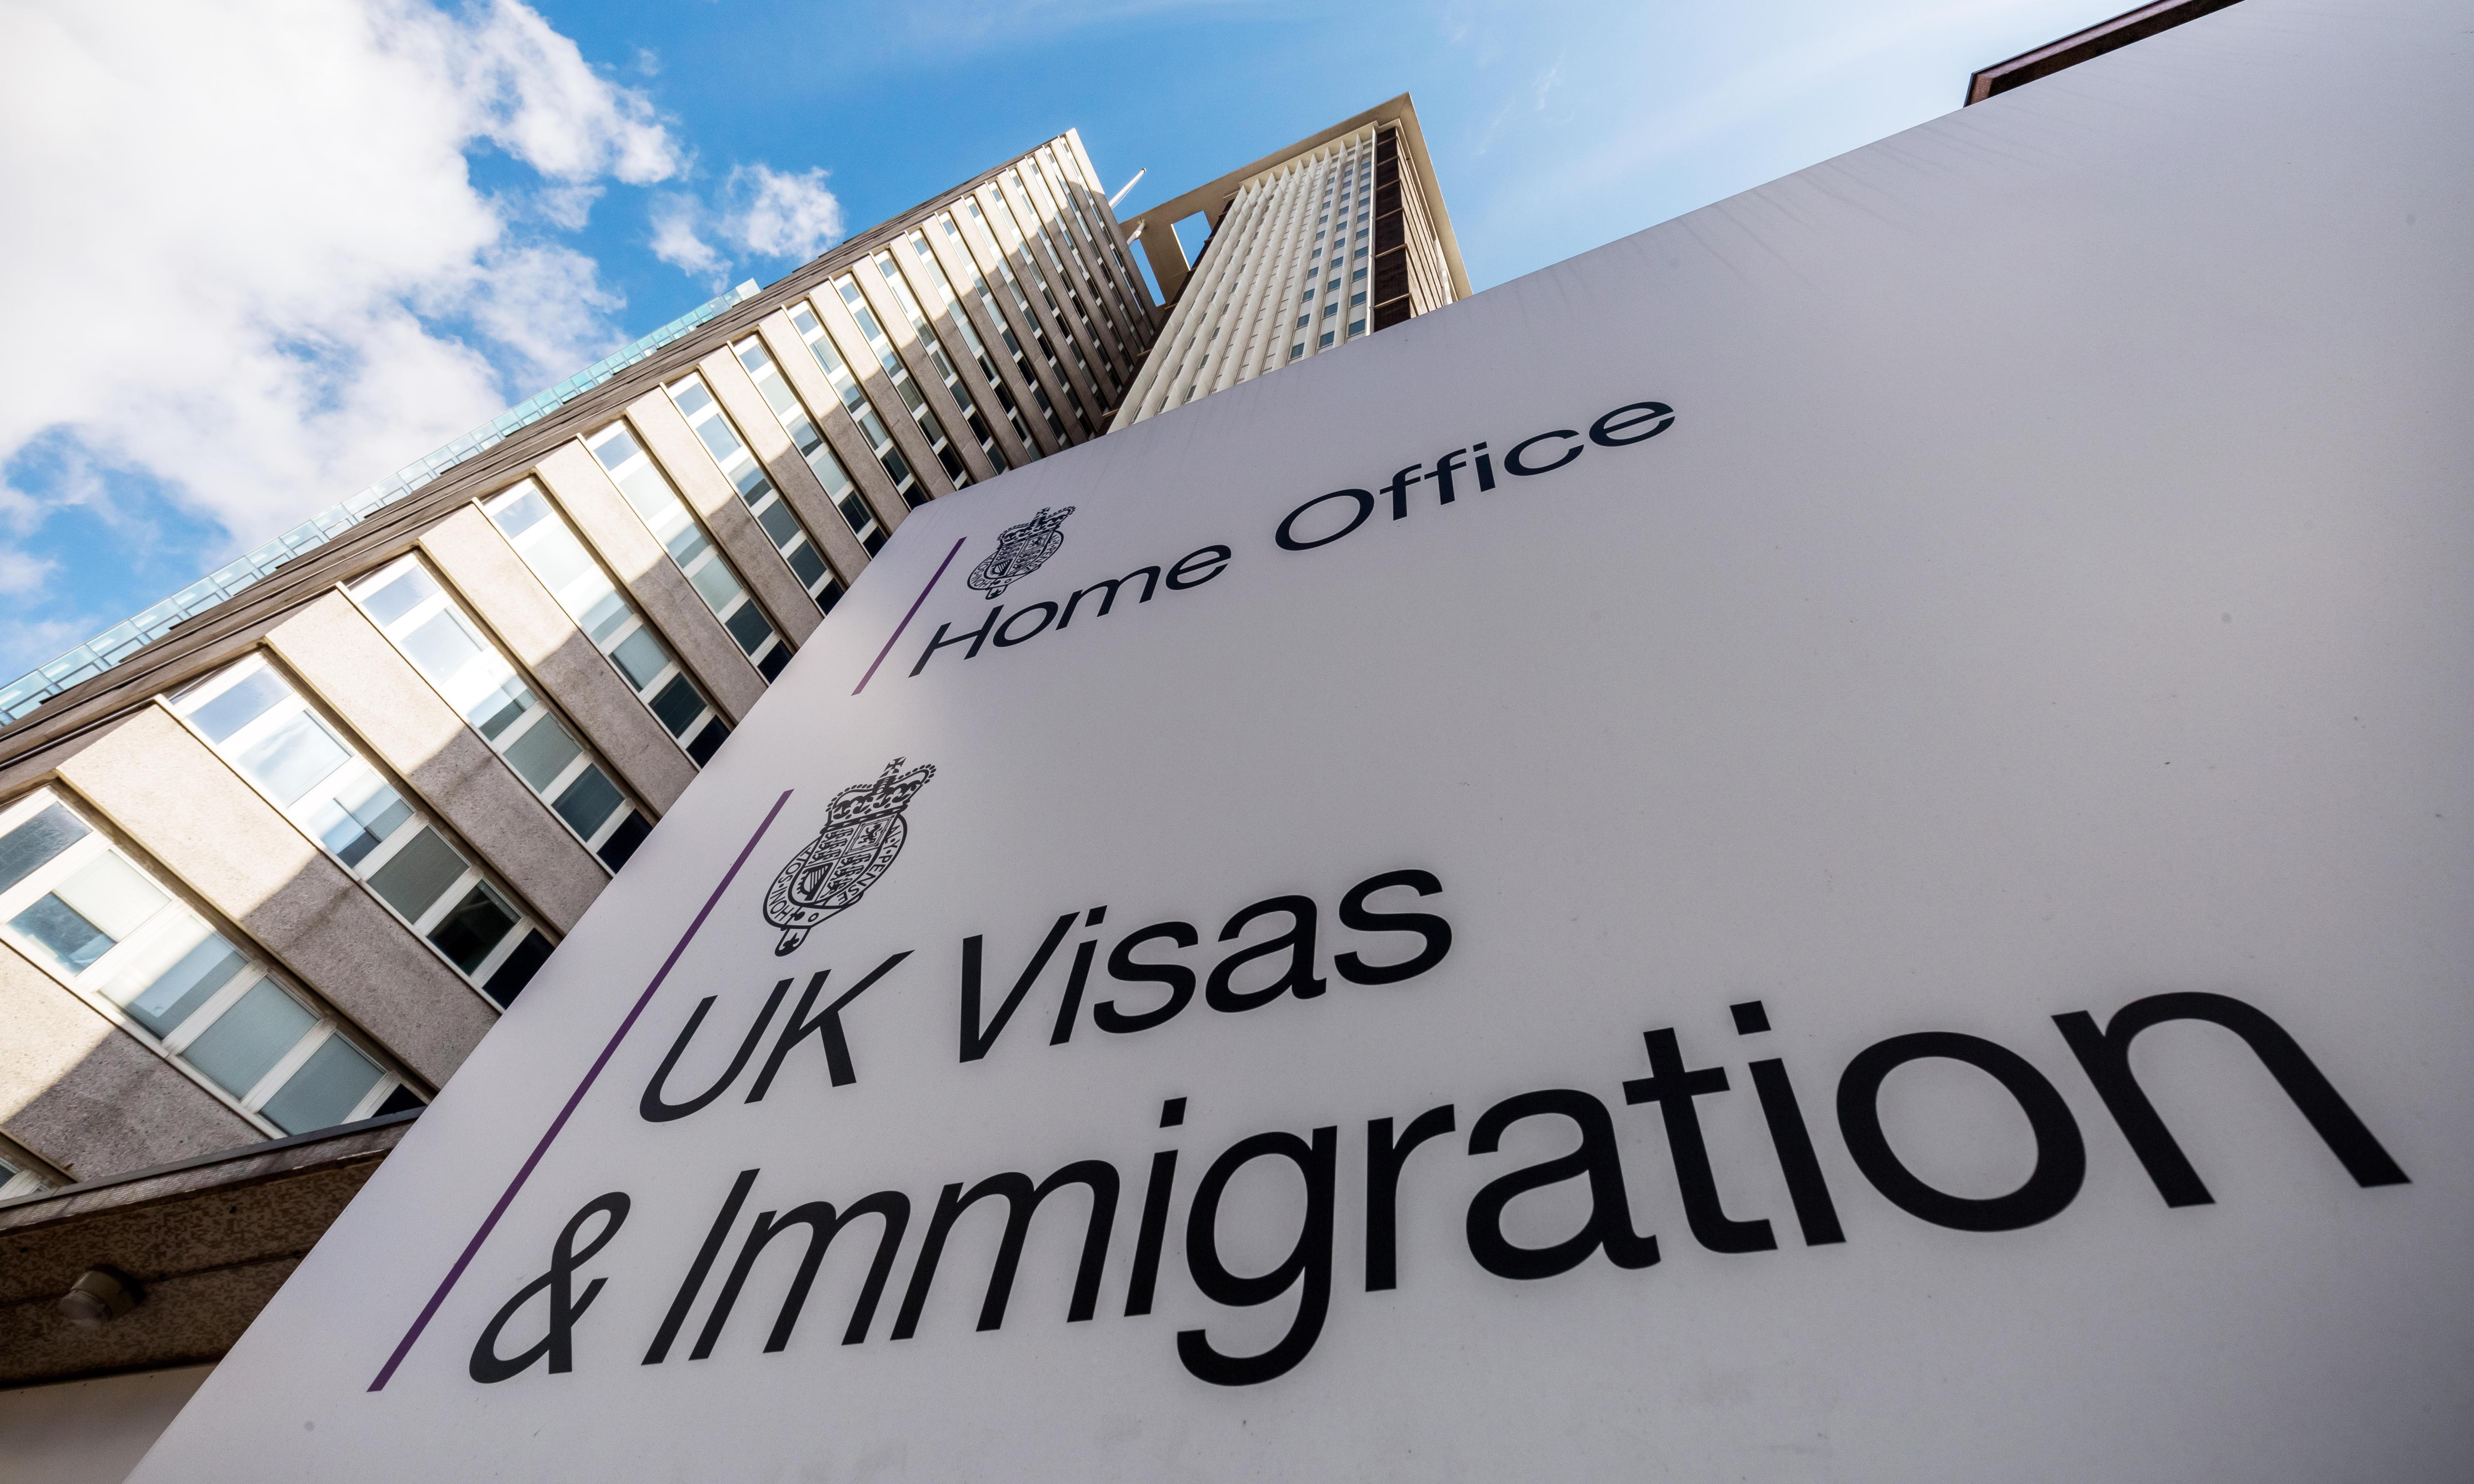 The Home Office is cruel and incompetent – it is time it was abolished